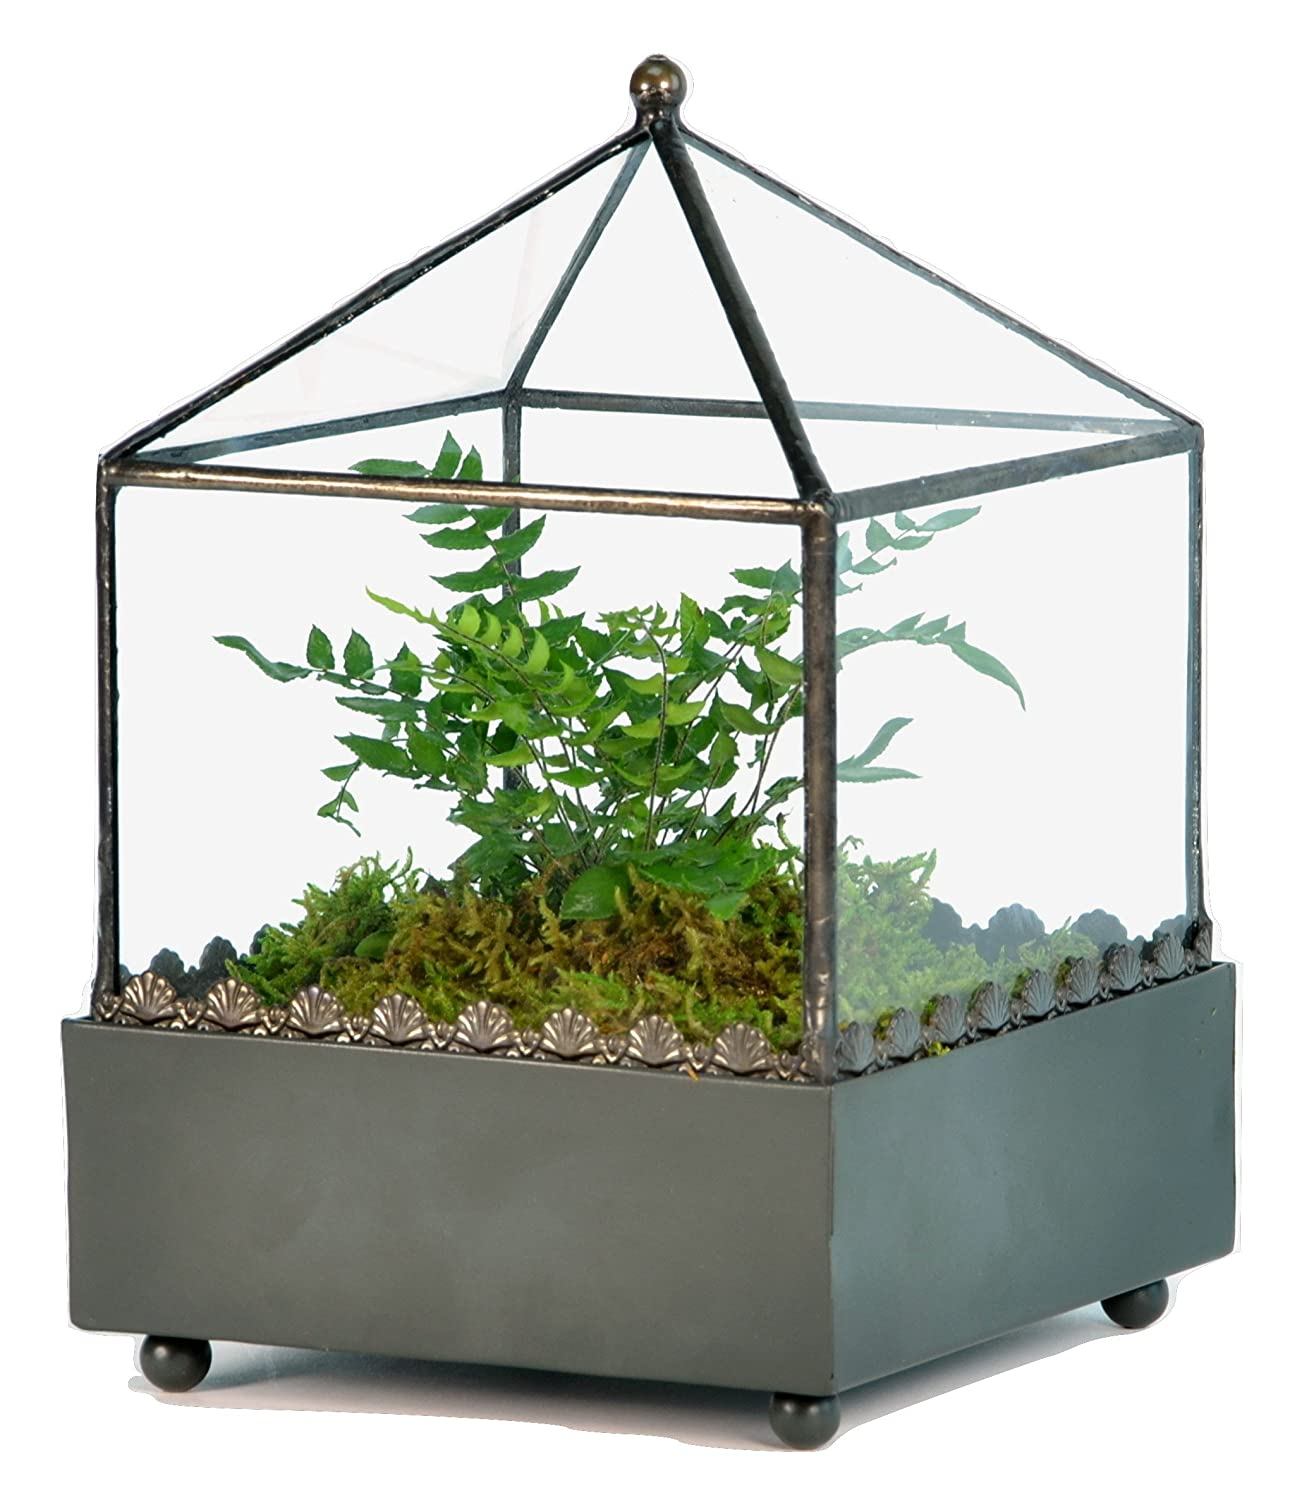 Amazon.com: H Potter Glass Terrarium Wardian Case   Handcrafted Tabletop  Square Planter Box   Modern Geometric Indoor Display Case   Succulent  Container ...